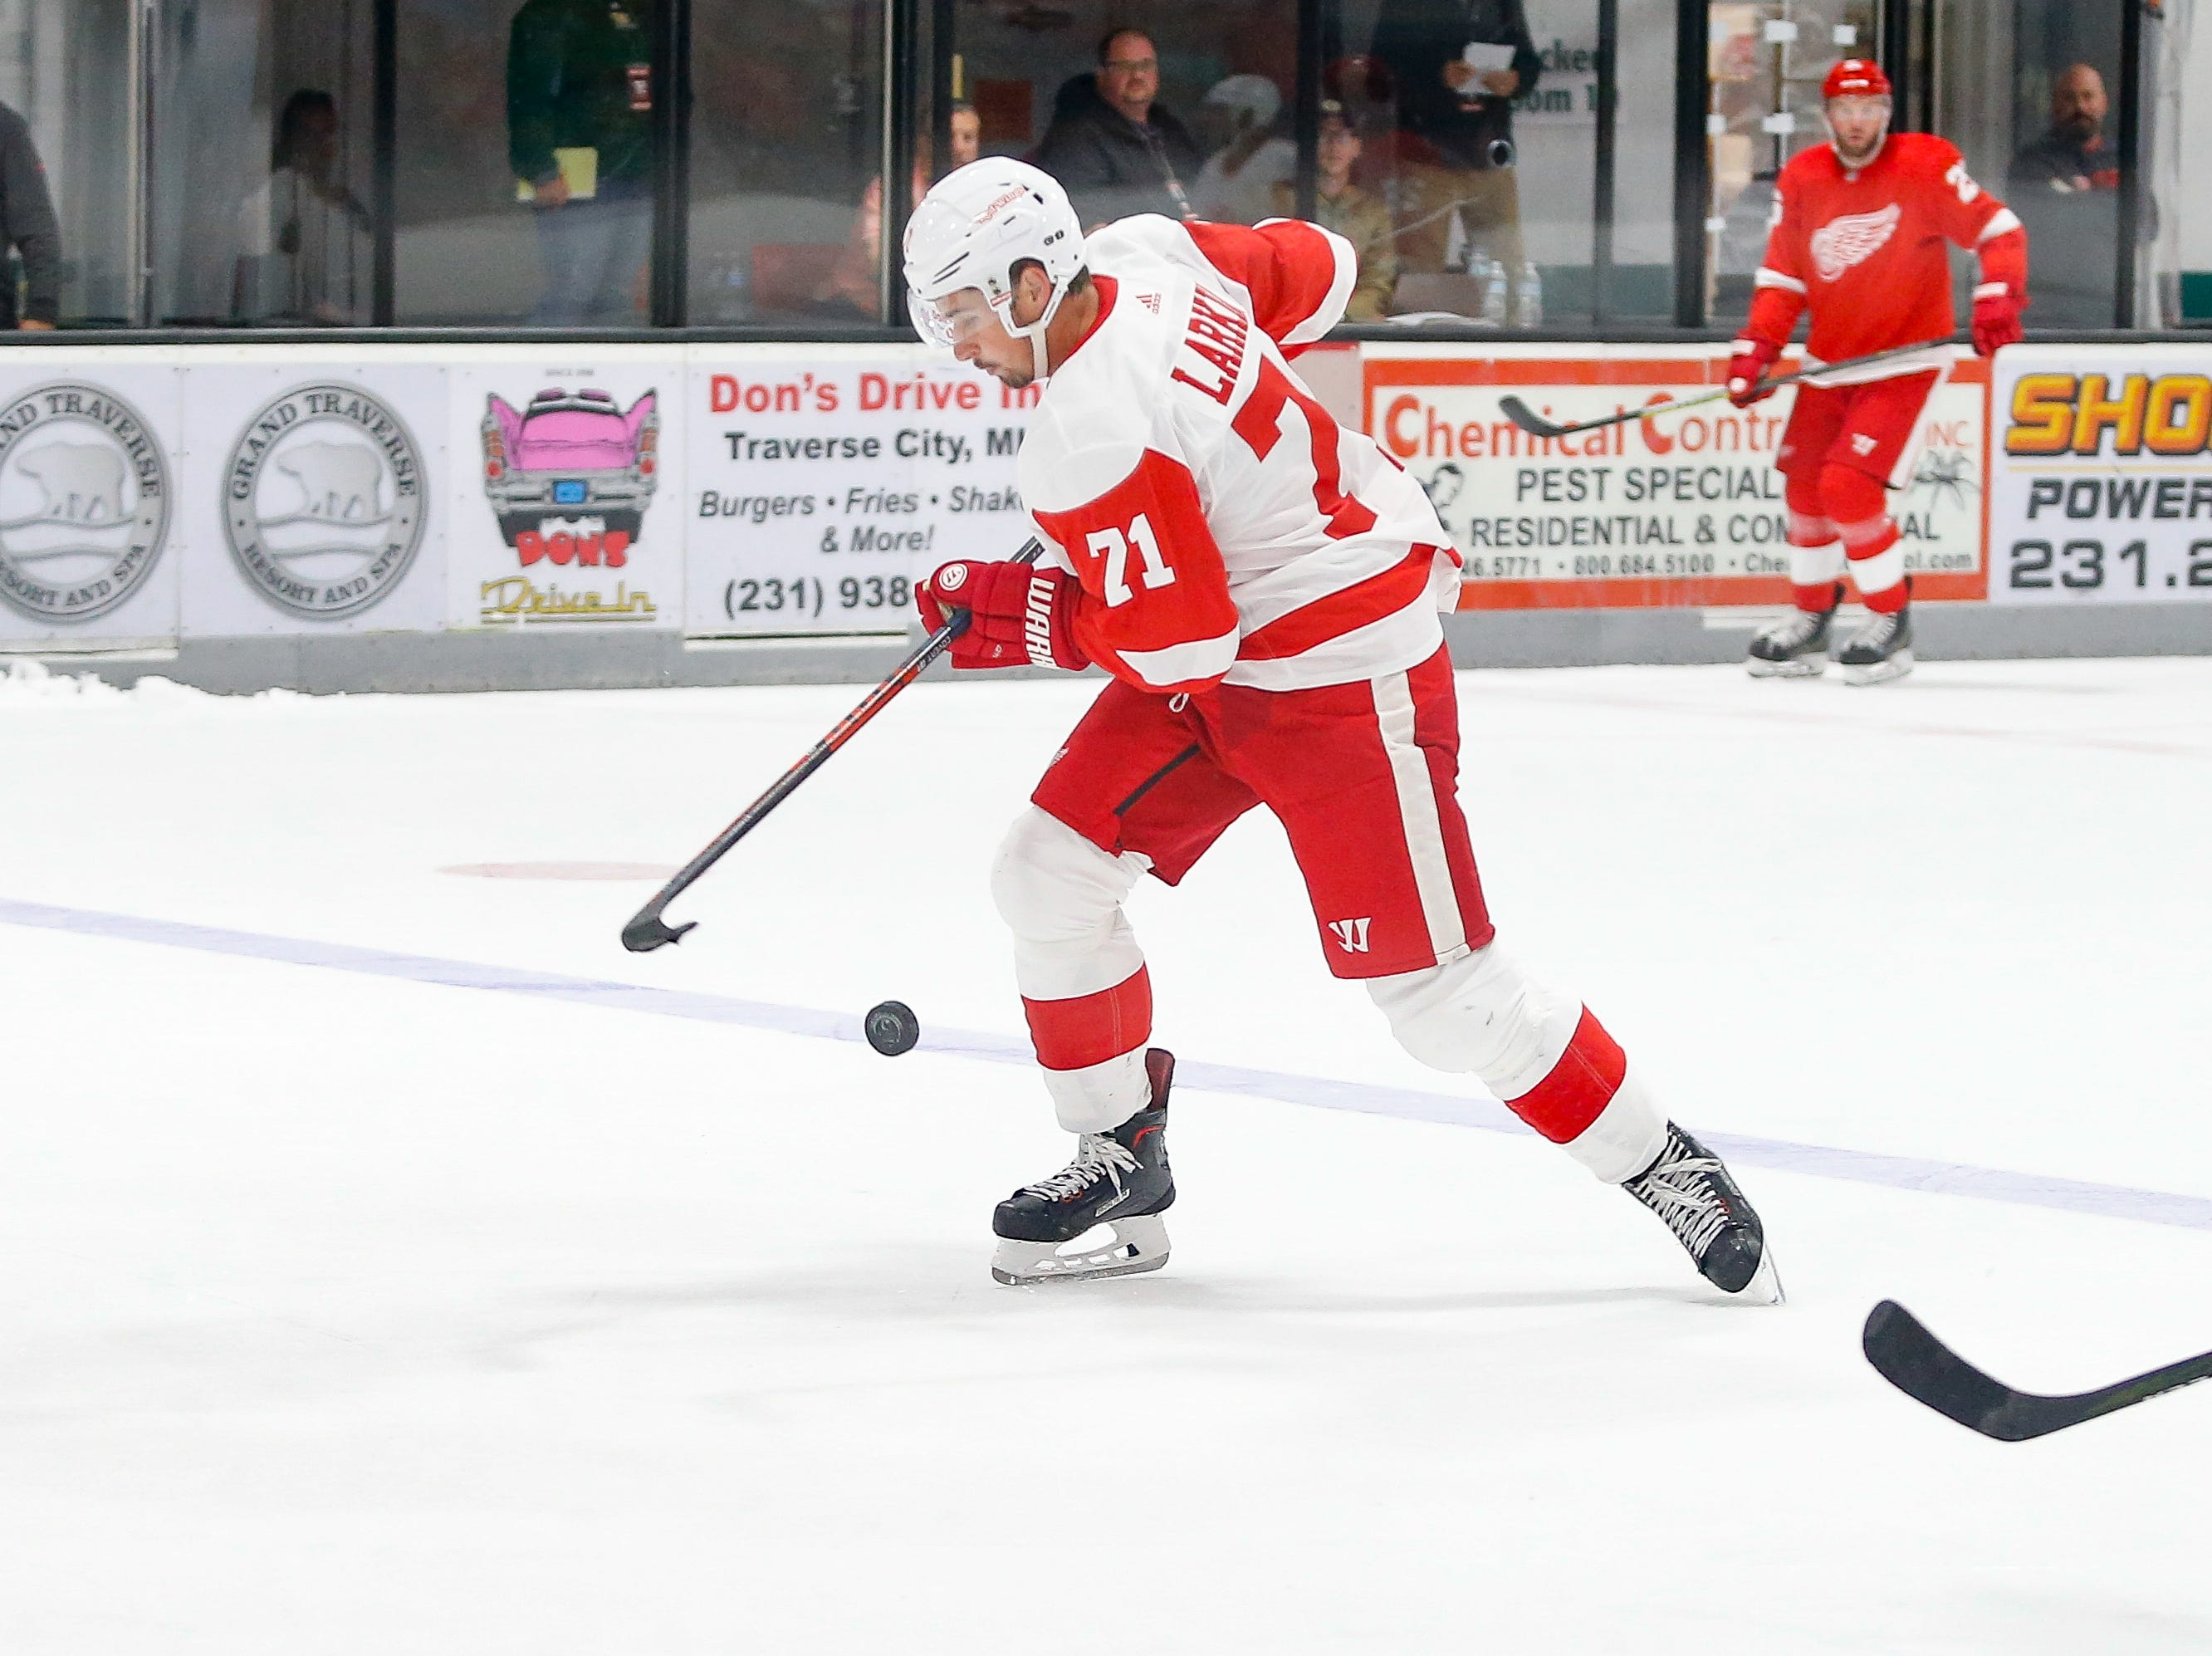 Dylan Larkin (71) looks to control the puck as he moves into Team Red's zone.